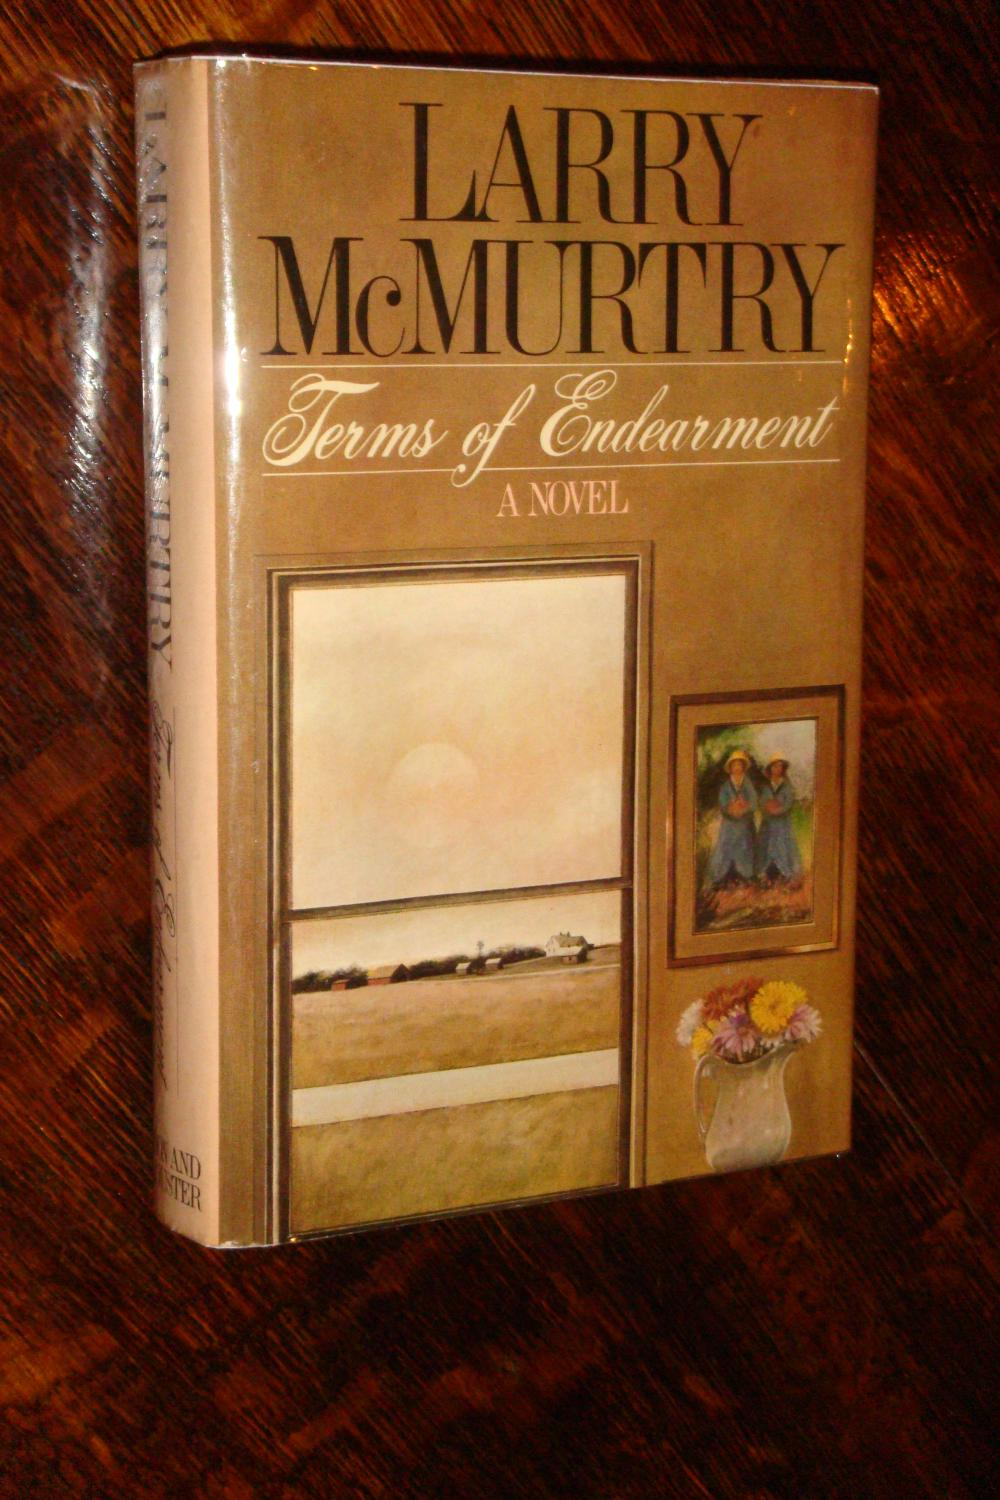 Terms of Endearment (signed) McMurtry, Larry Very Good Hardcover 1975. Simon and Schuster. New York. 410 pages. First edition, 2nd printing. SIGNED by Larry McMurtry directly to the title page. Signature only, no in